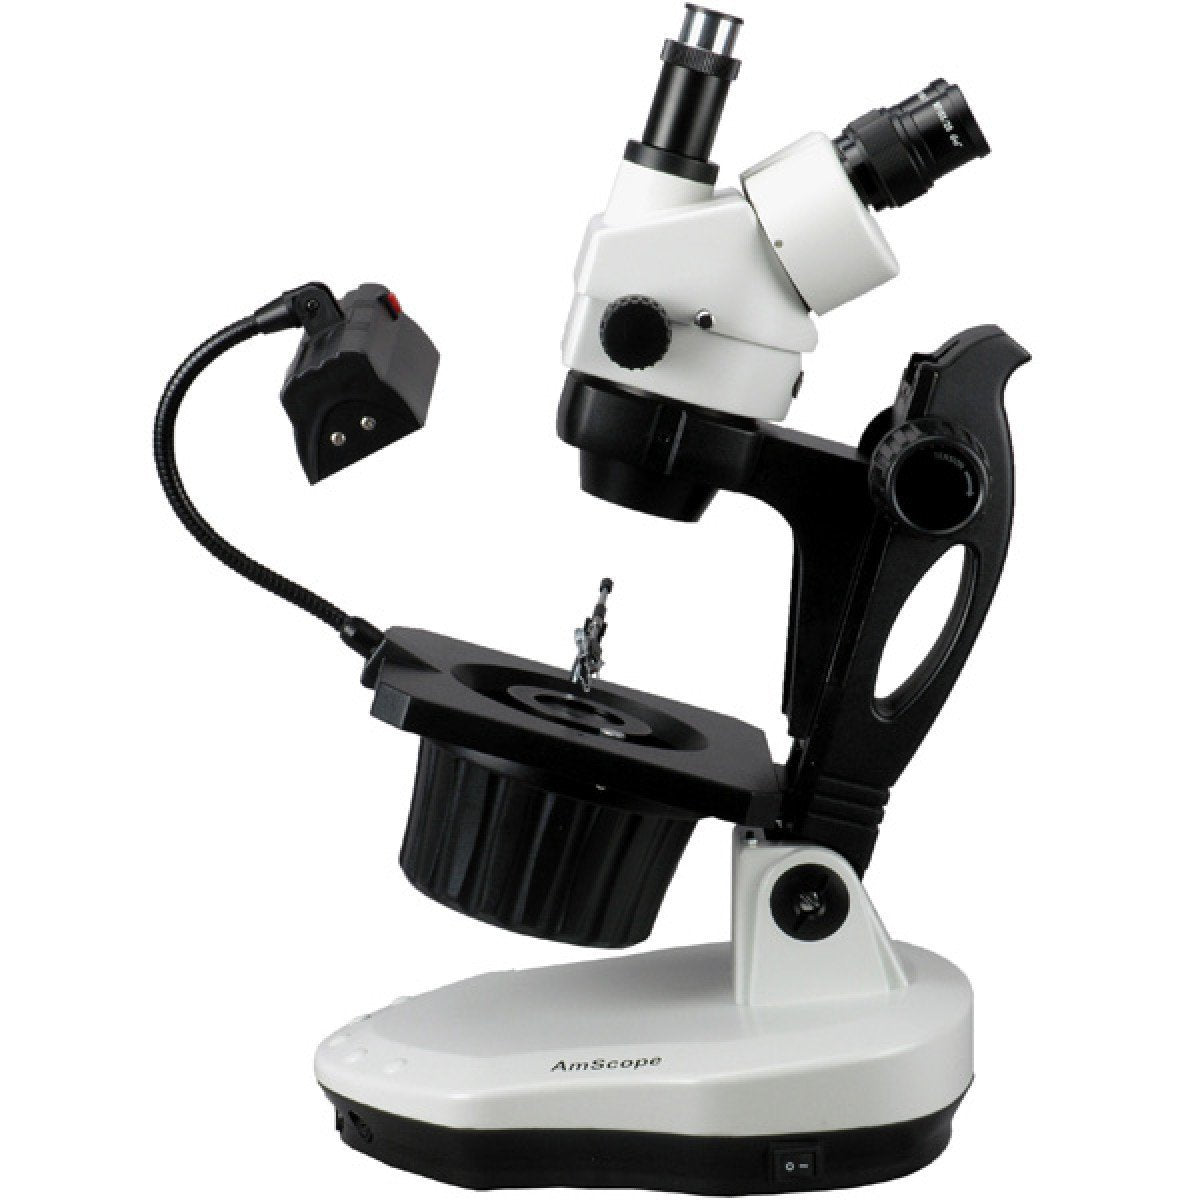 AmScope 3.5X-90X Advanced Jewel Gem Microscope + 10MP Camera